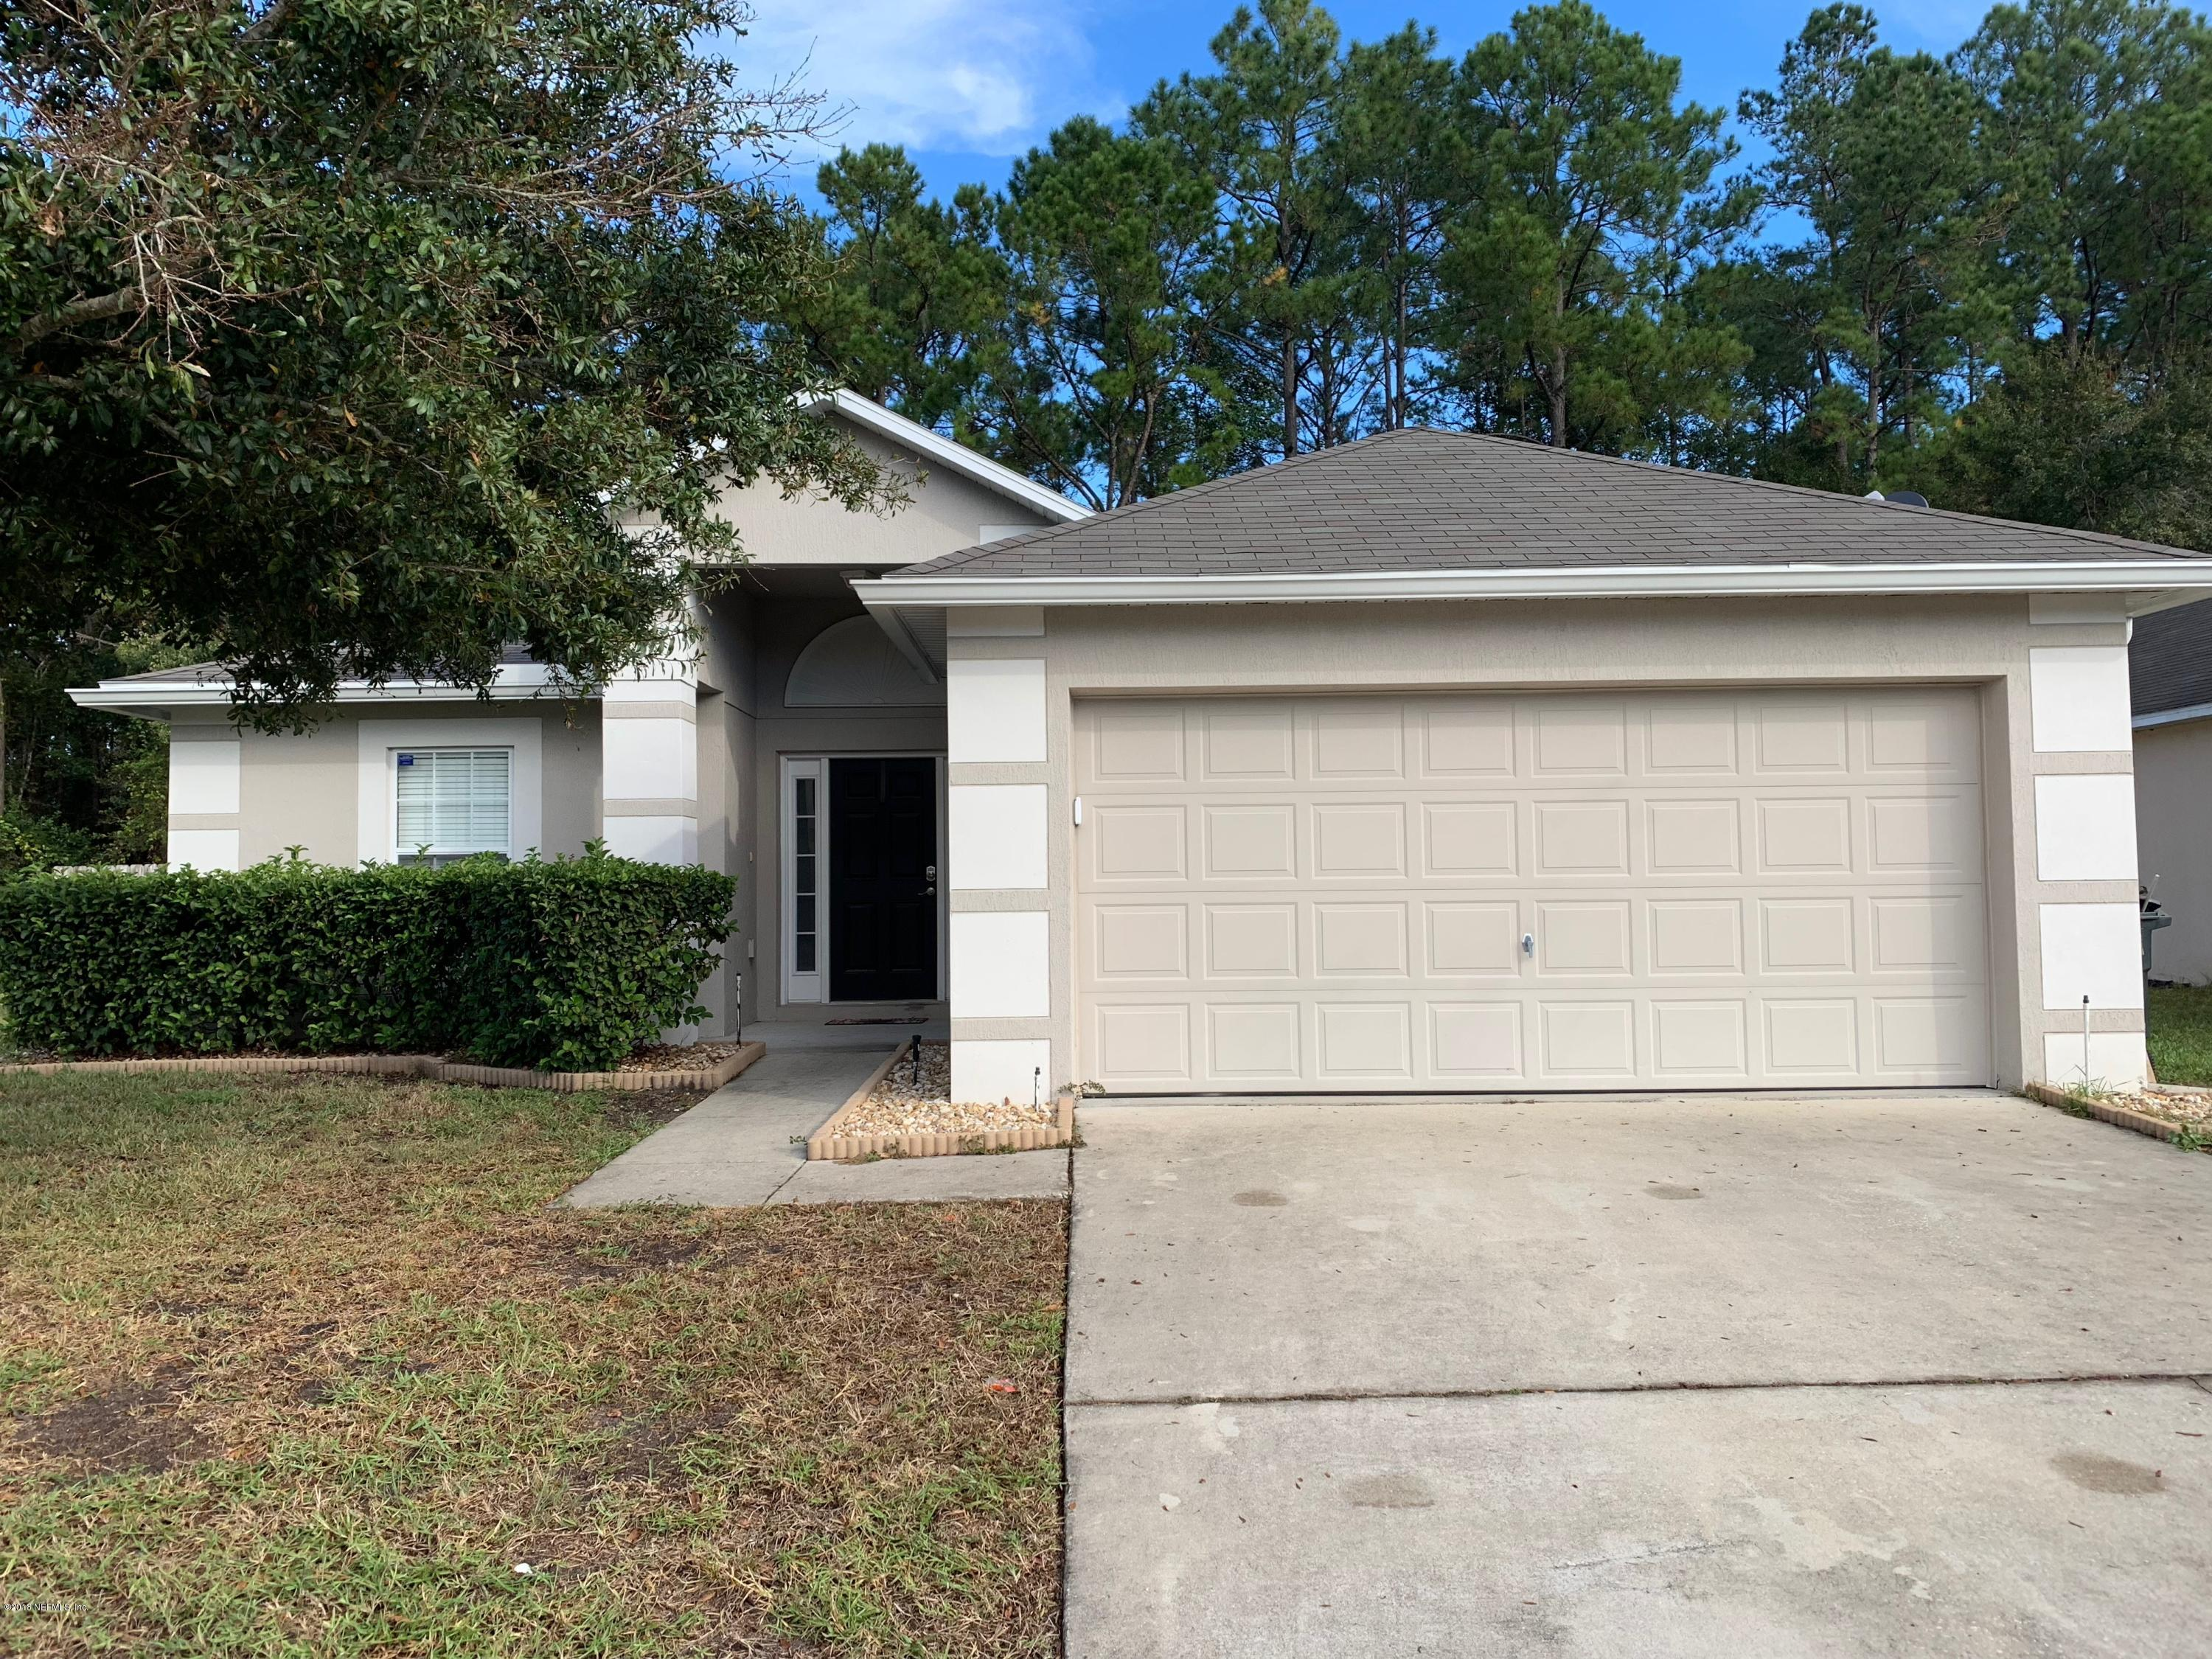 4431 SPARROW HAWK, JACKSONVILLE, FLORIDA 32210, 3 Bedrooms Bedrooms, ,2 BathroomsBathrooms,Residential - single family,For sale,SPARROW HAWK,965476